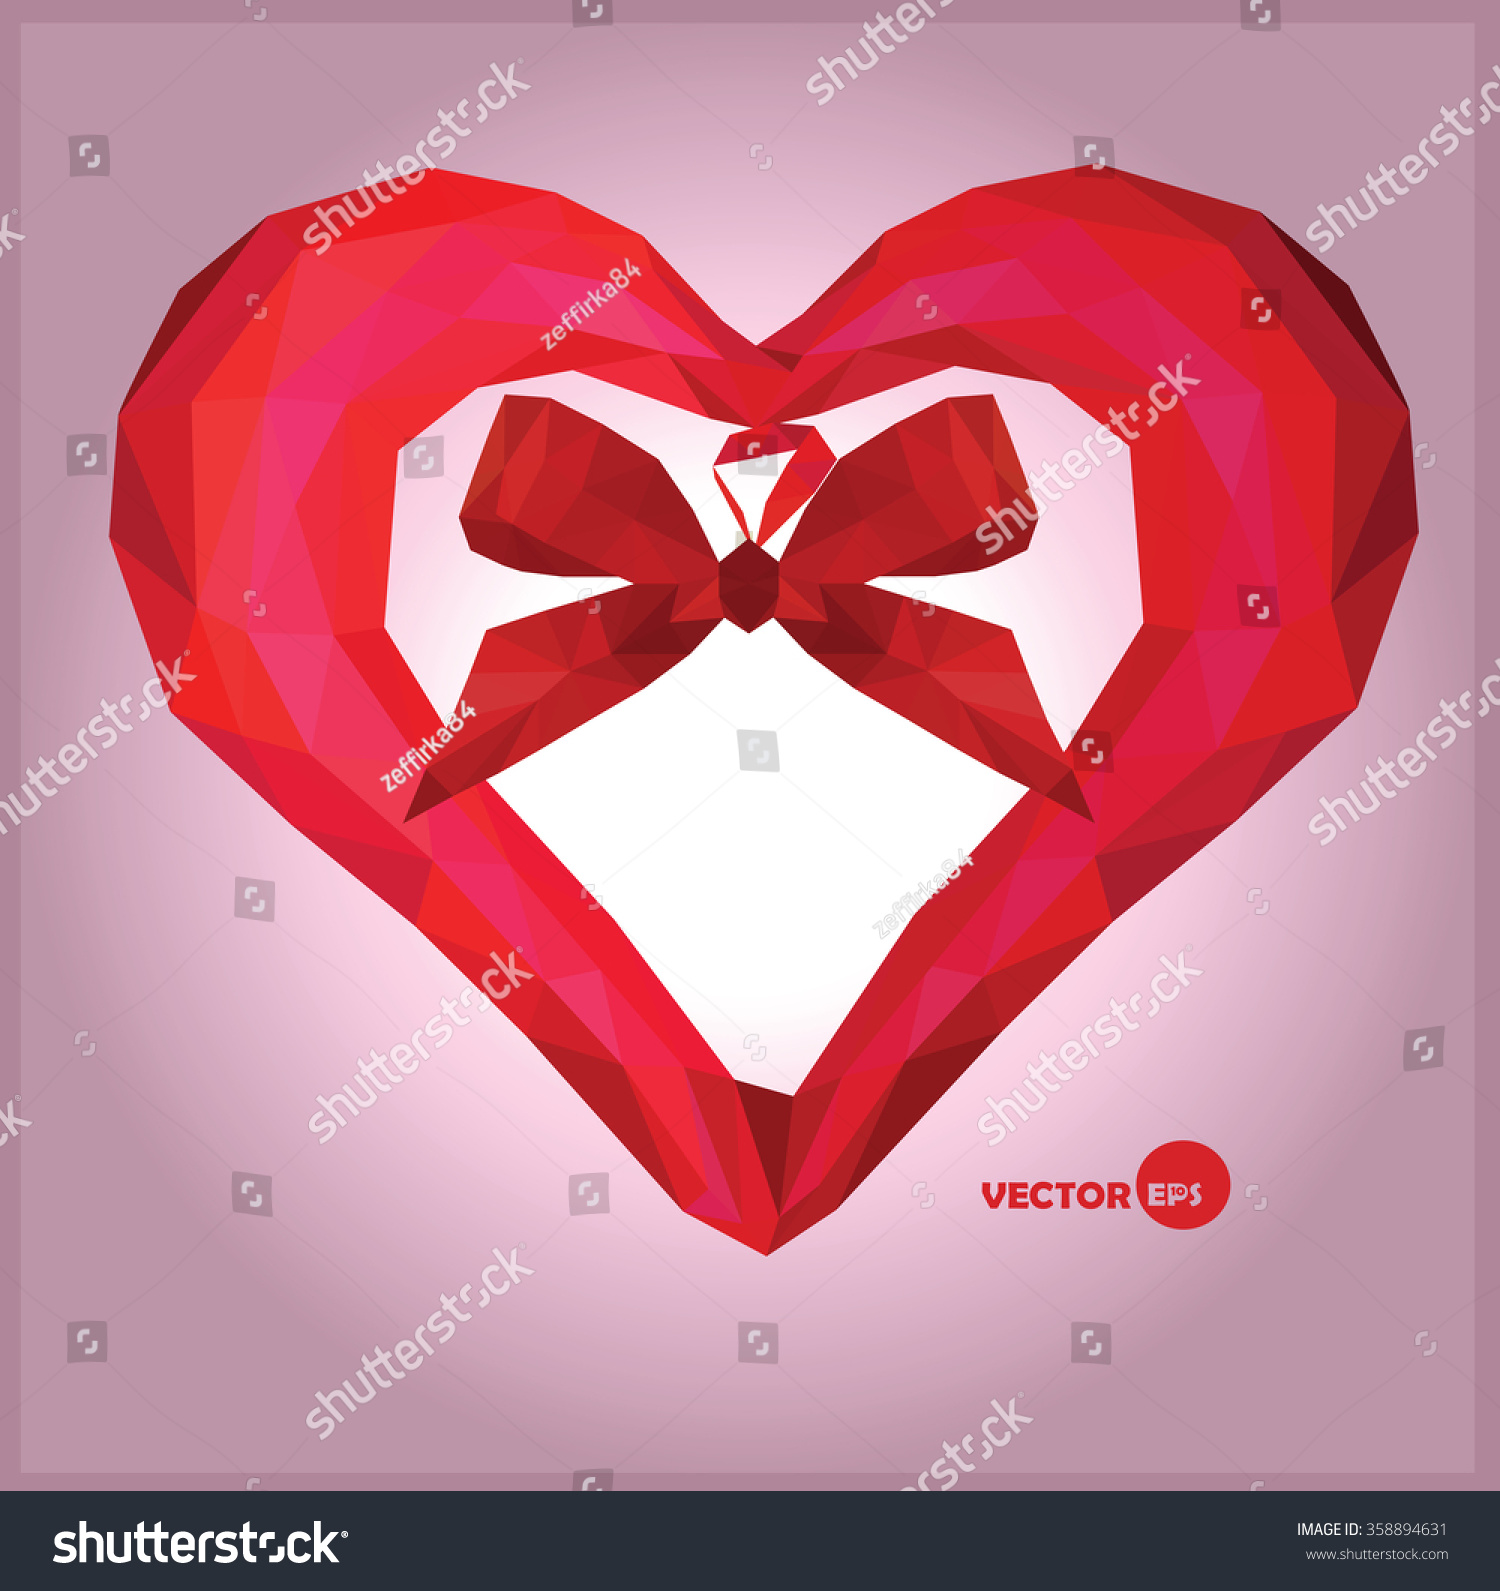 romantic background for valentines dayred origami heart on violet background valentines heart